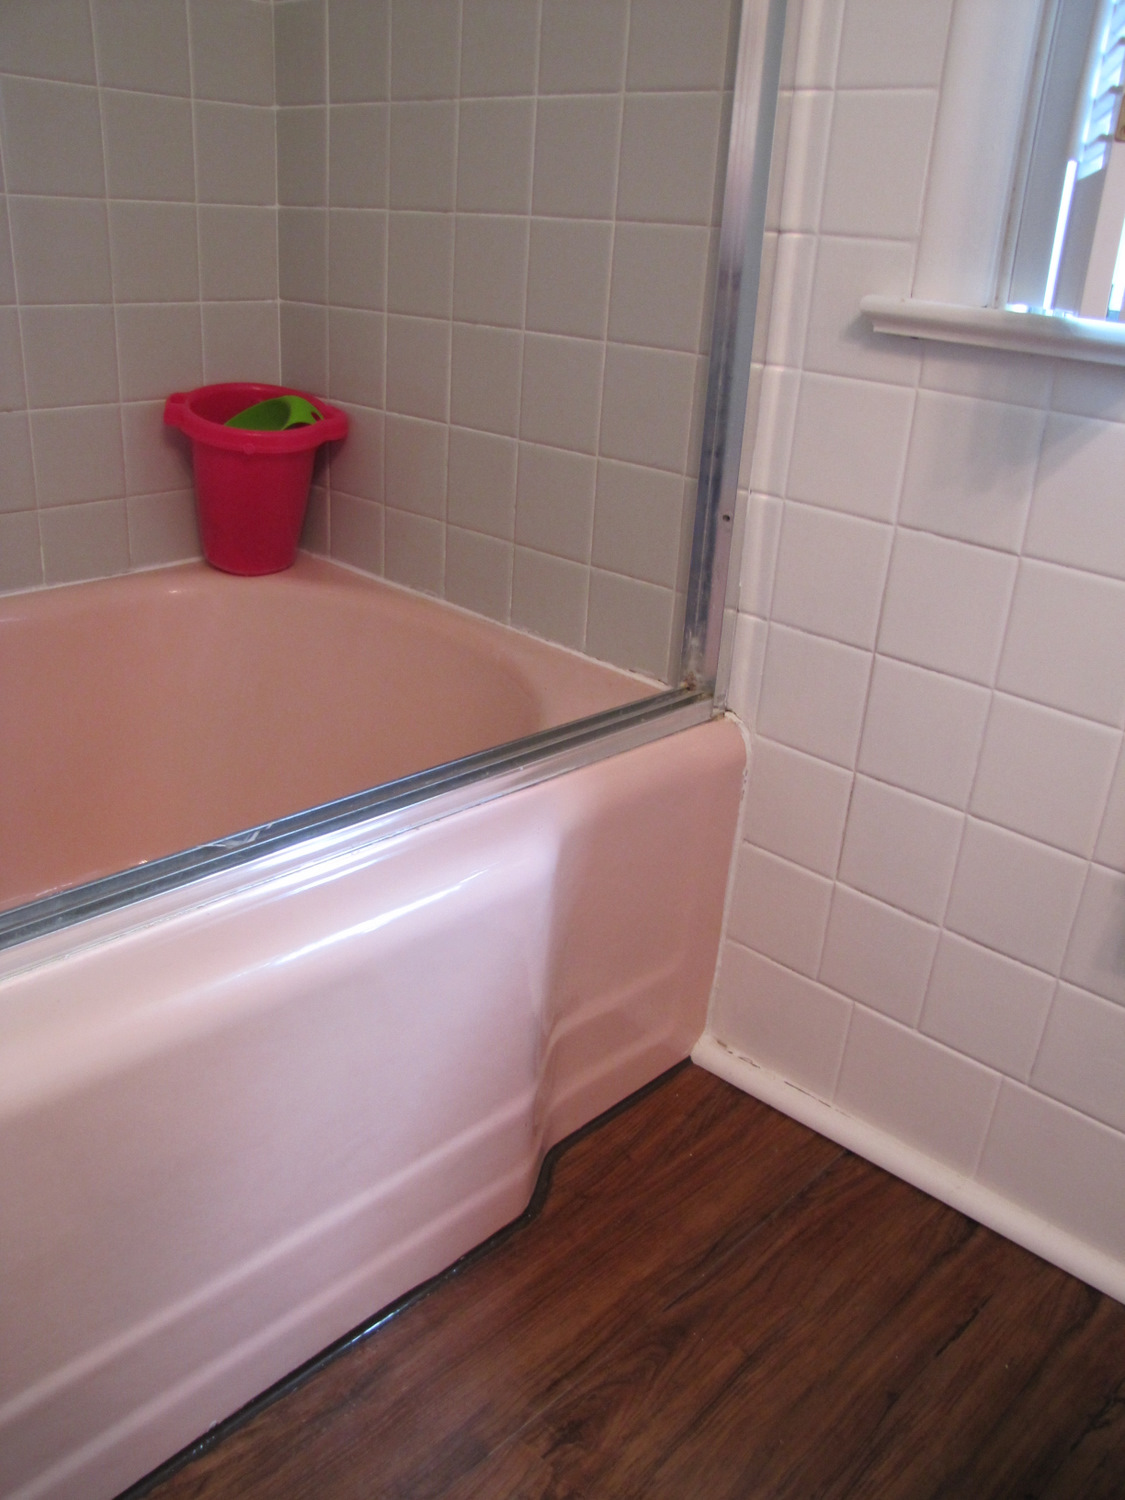 Smoke mirrors a bathroom reveal the painted home - How to prepare bathroom walls for painting ...